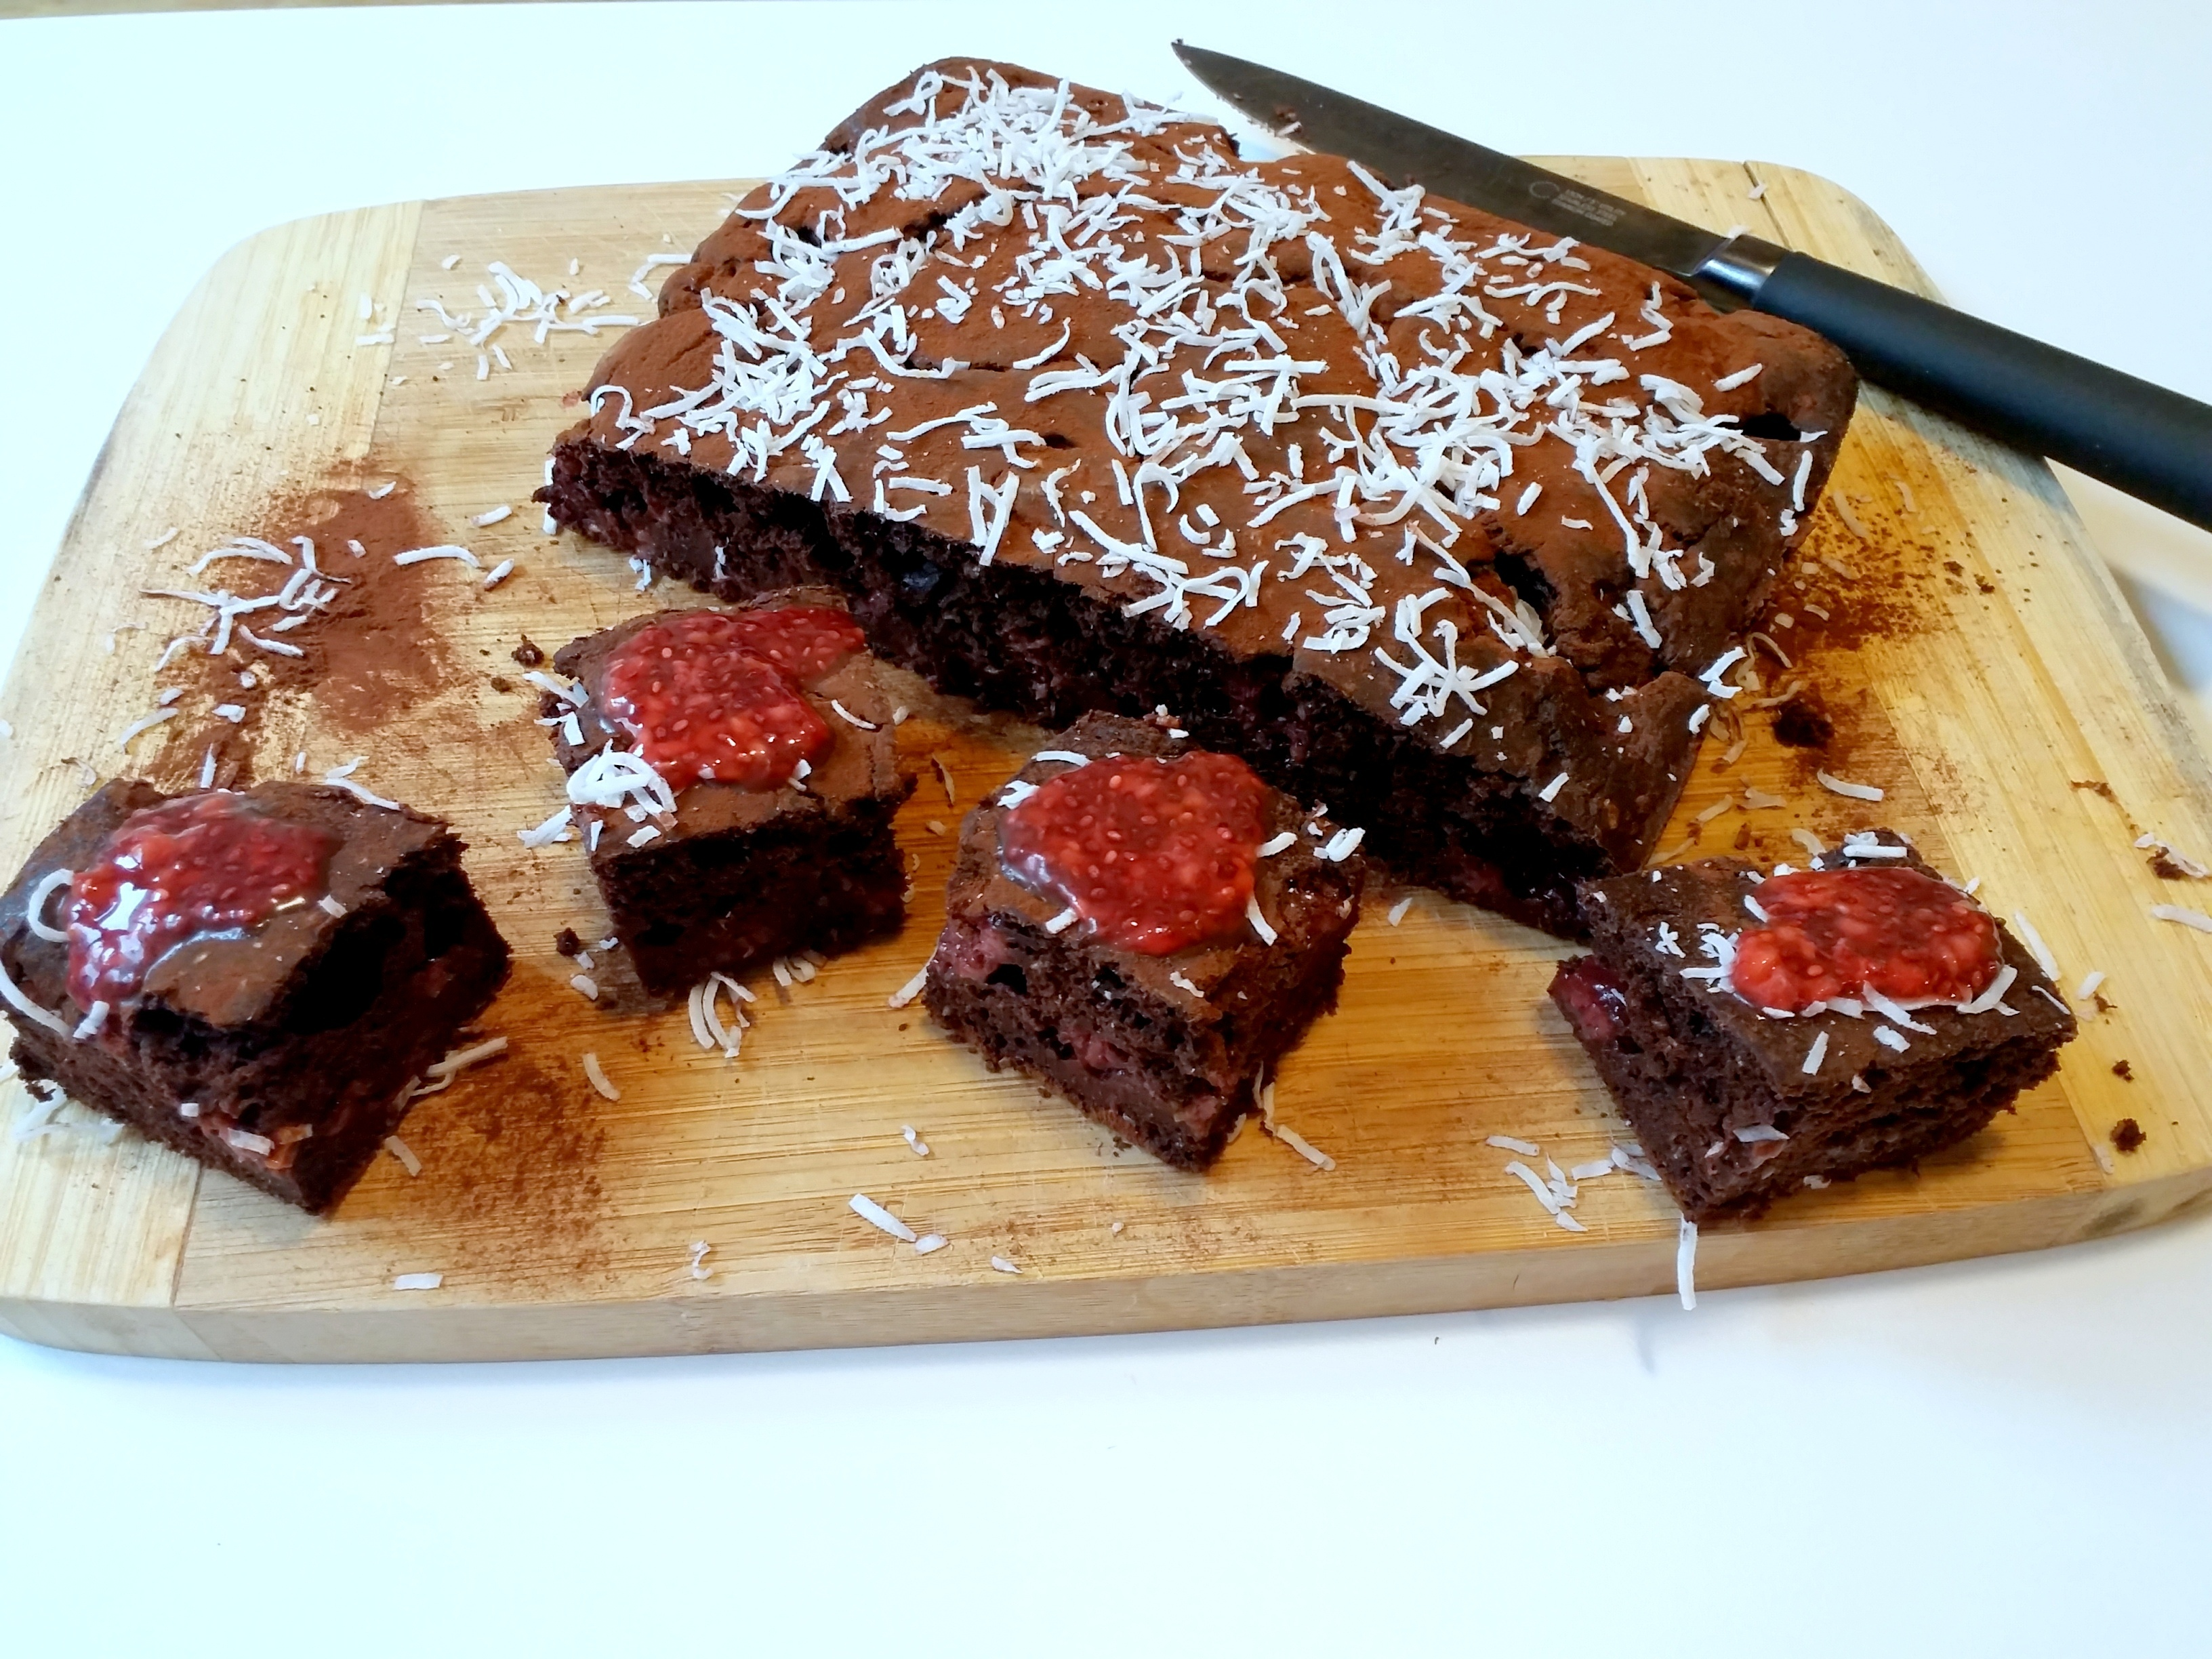 Queque (tipo Brownie) de Chocolate y Frambuesas.